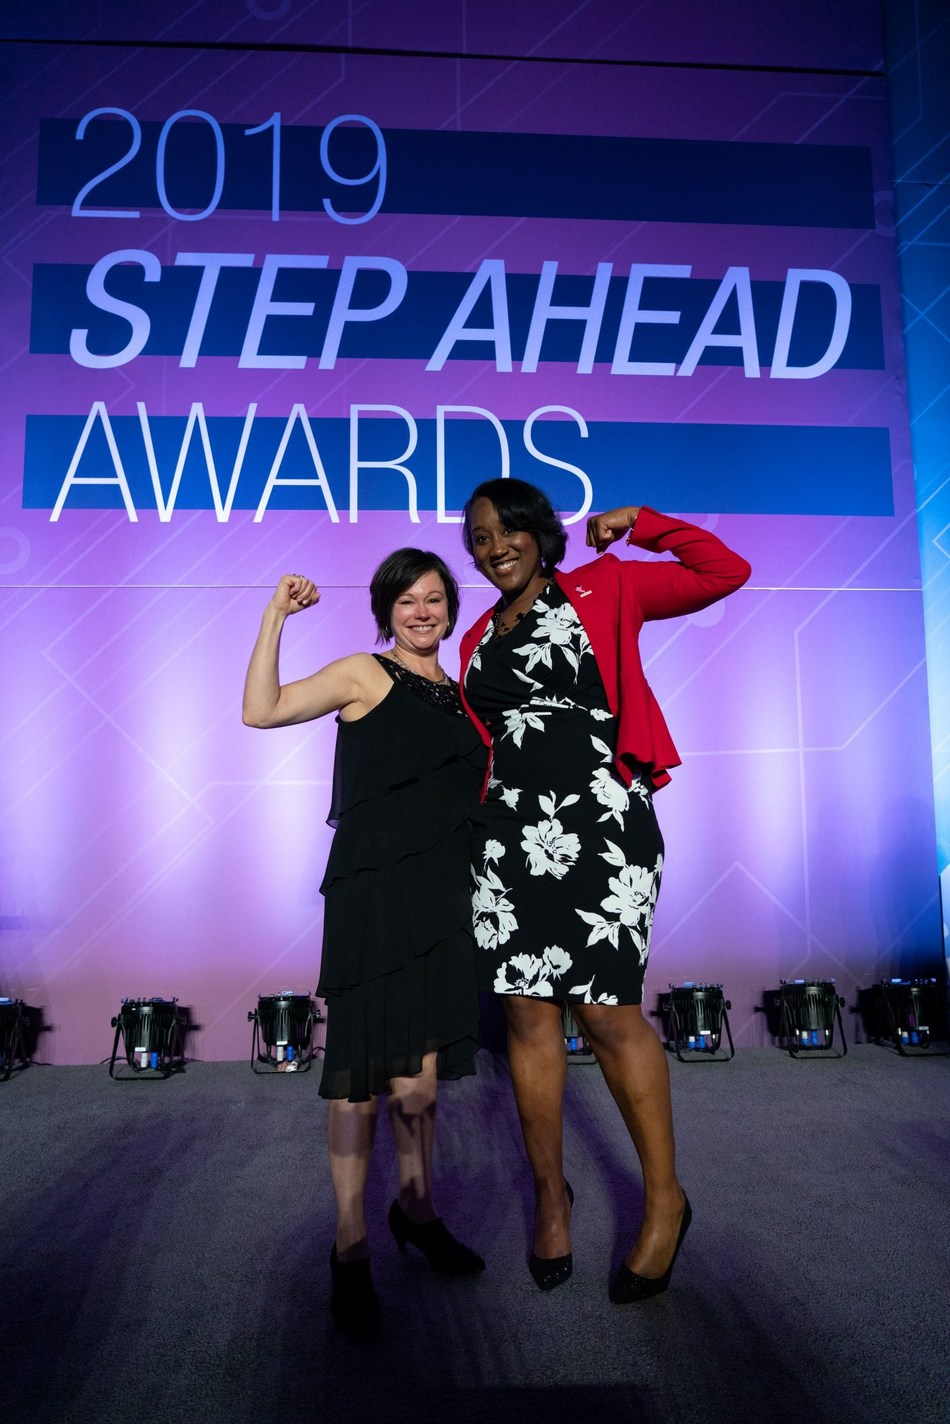 The Manufacturing Institute honored Toyota team members Renee Robertson and Shamaya Morris for excellence in their careers during the Women in Manufacturing STEP Ahead Awards Program. Photo by David Bohrer/National Association of Manufacturers.